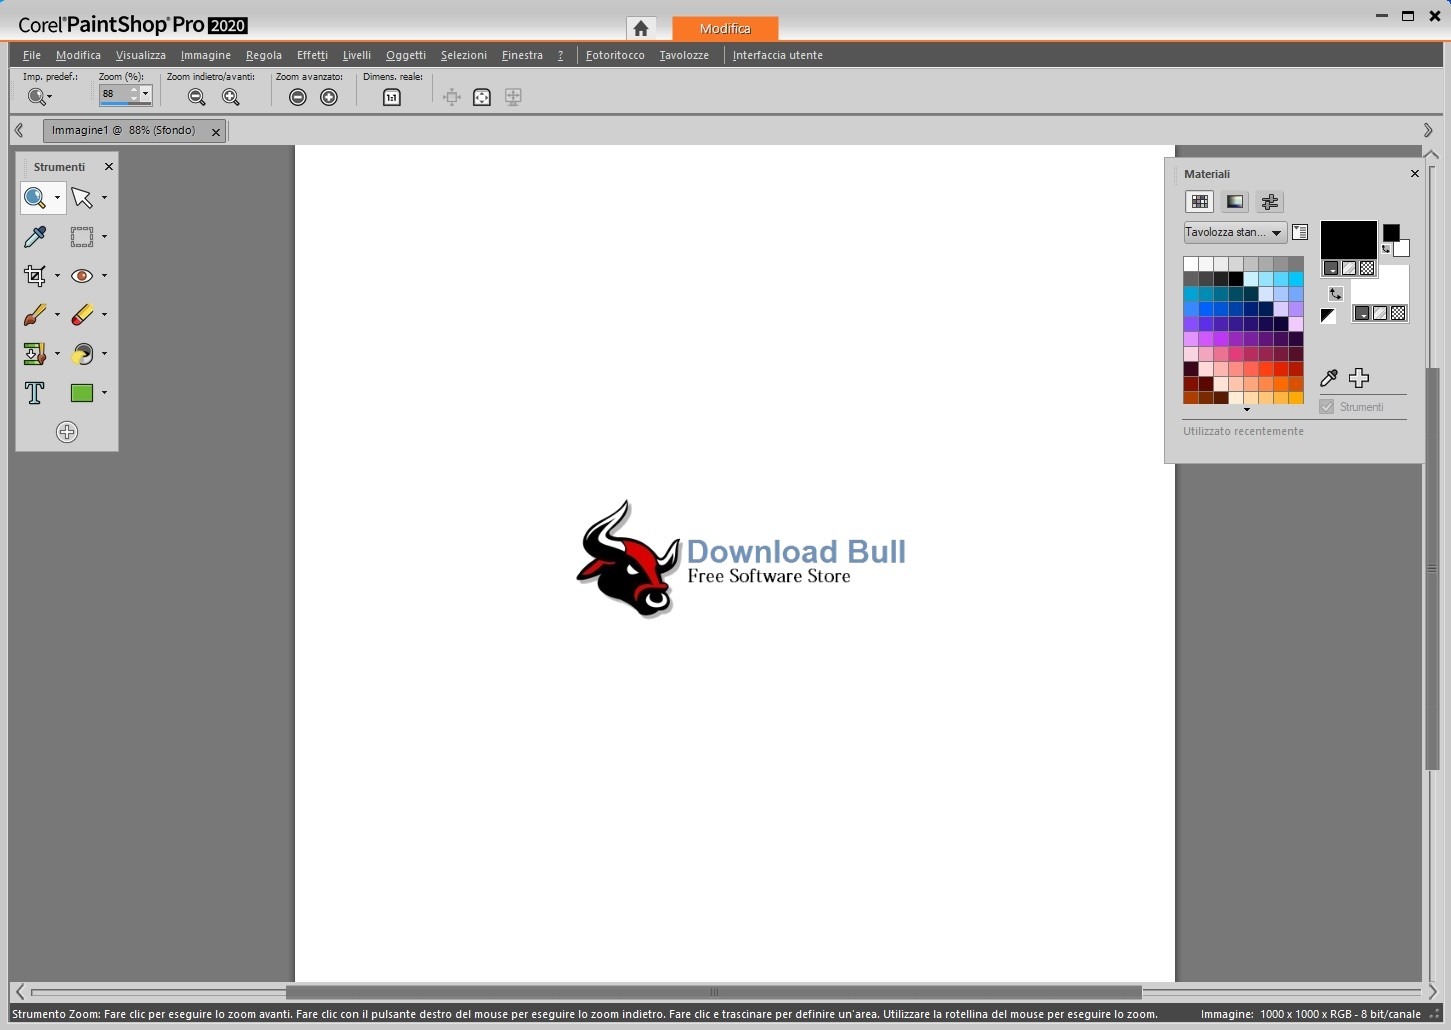 Portable Corel PaintShop Pro 2020 v22.0 Free Download